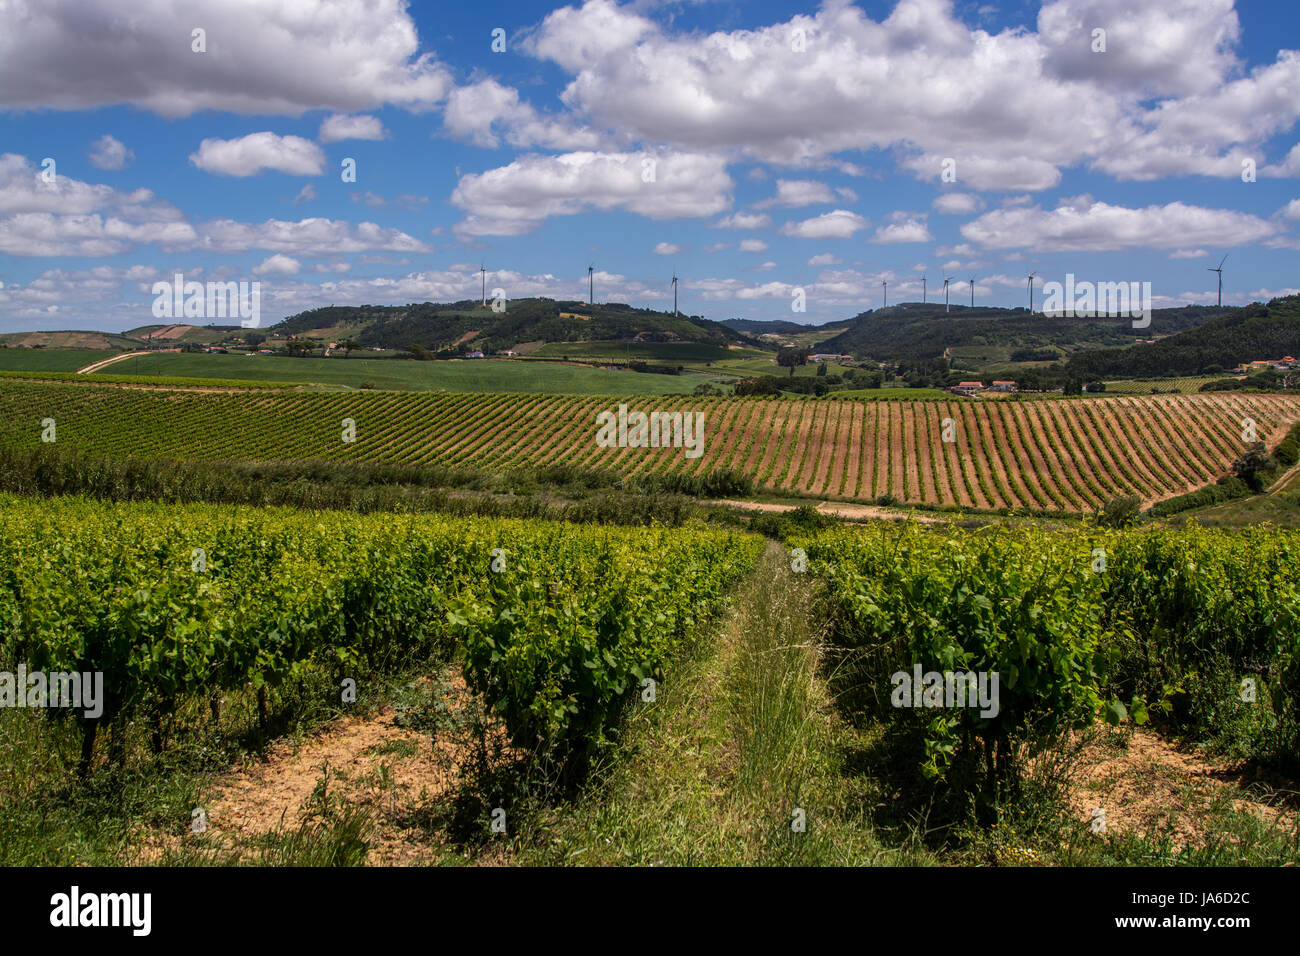 Torres Vedras Portugal. 18 May 2017.View of the vine fields inTorres Vedras.Torres Vedras, Portugal. photography - Stock Image